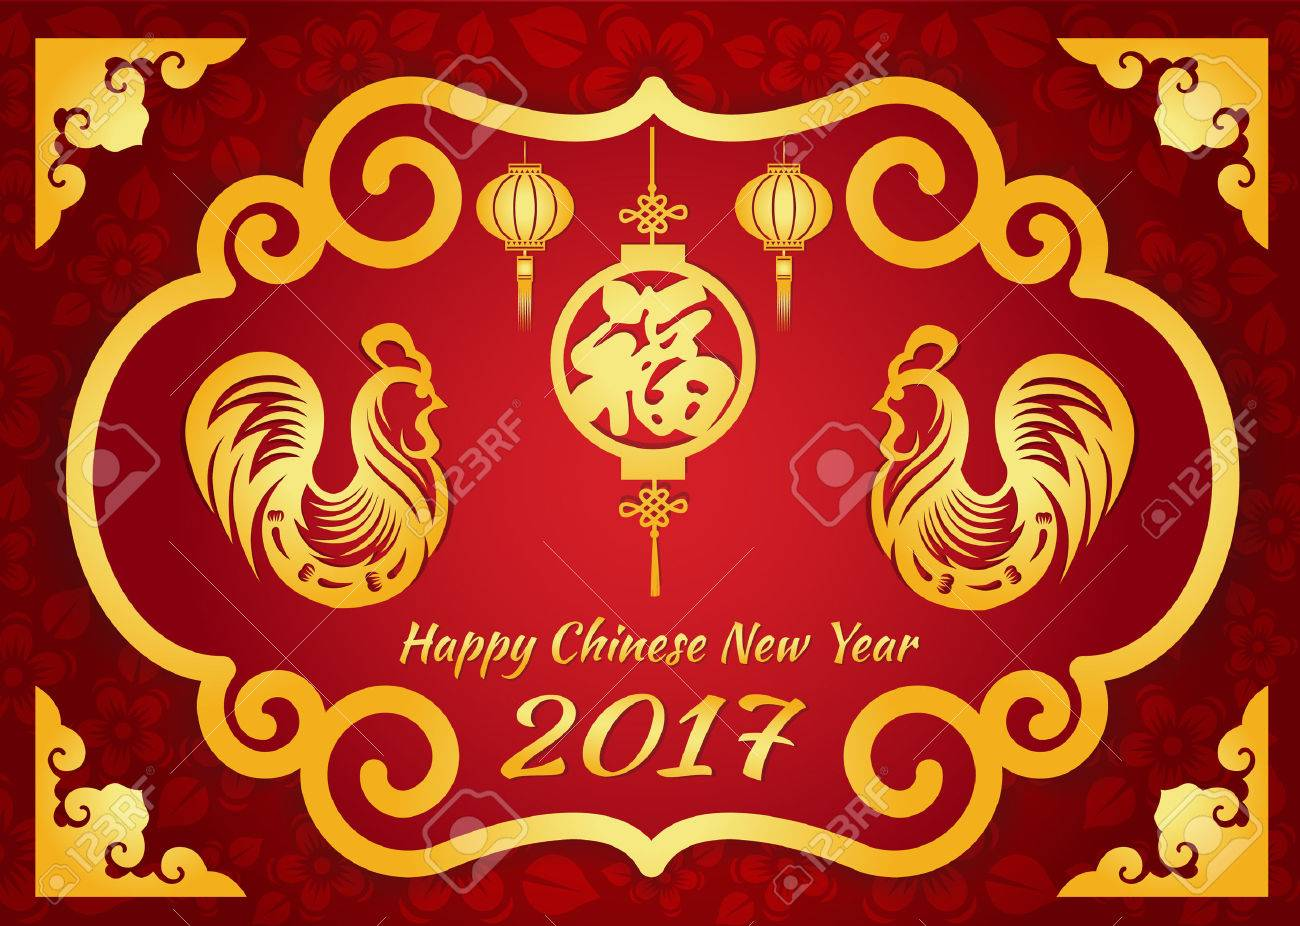 Happy chinese new year 2017 card is lanterns 2 gold chicken and happy chinese new year 2017 card is lanterns 2 gold chicken and chinese word mean kristyandbryce Choice Image